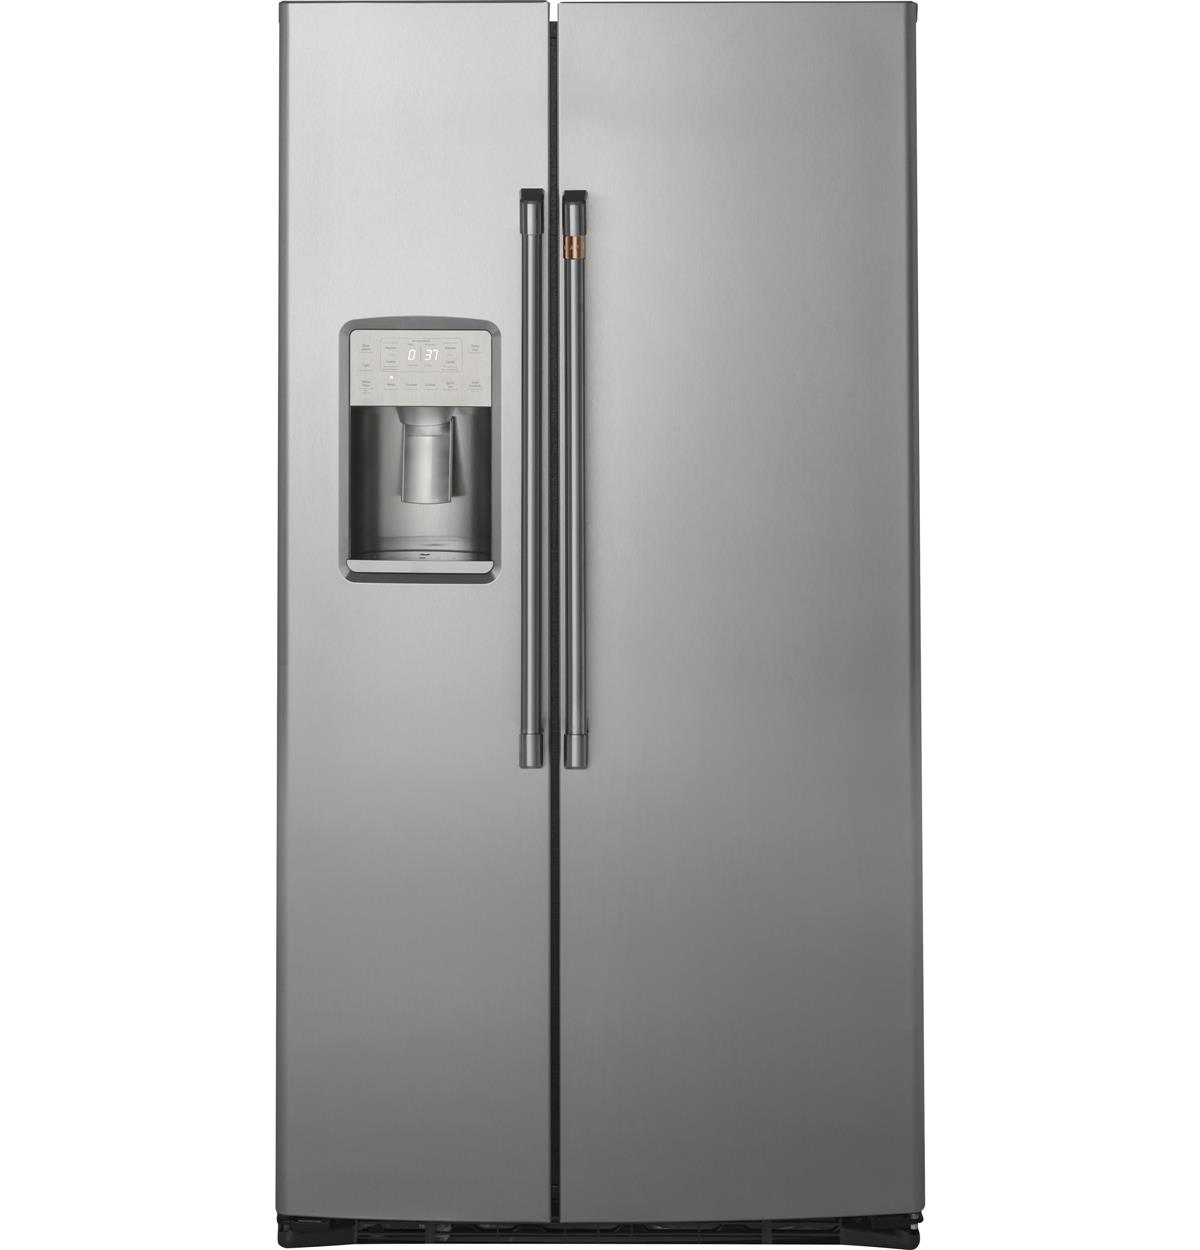 Café™ 21.9 Cu. Ft. Counter-Depth Side-By-Side Refrigerator